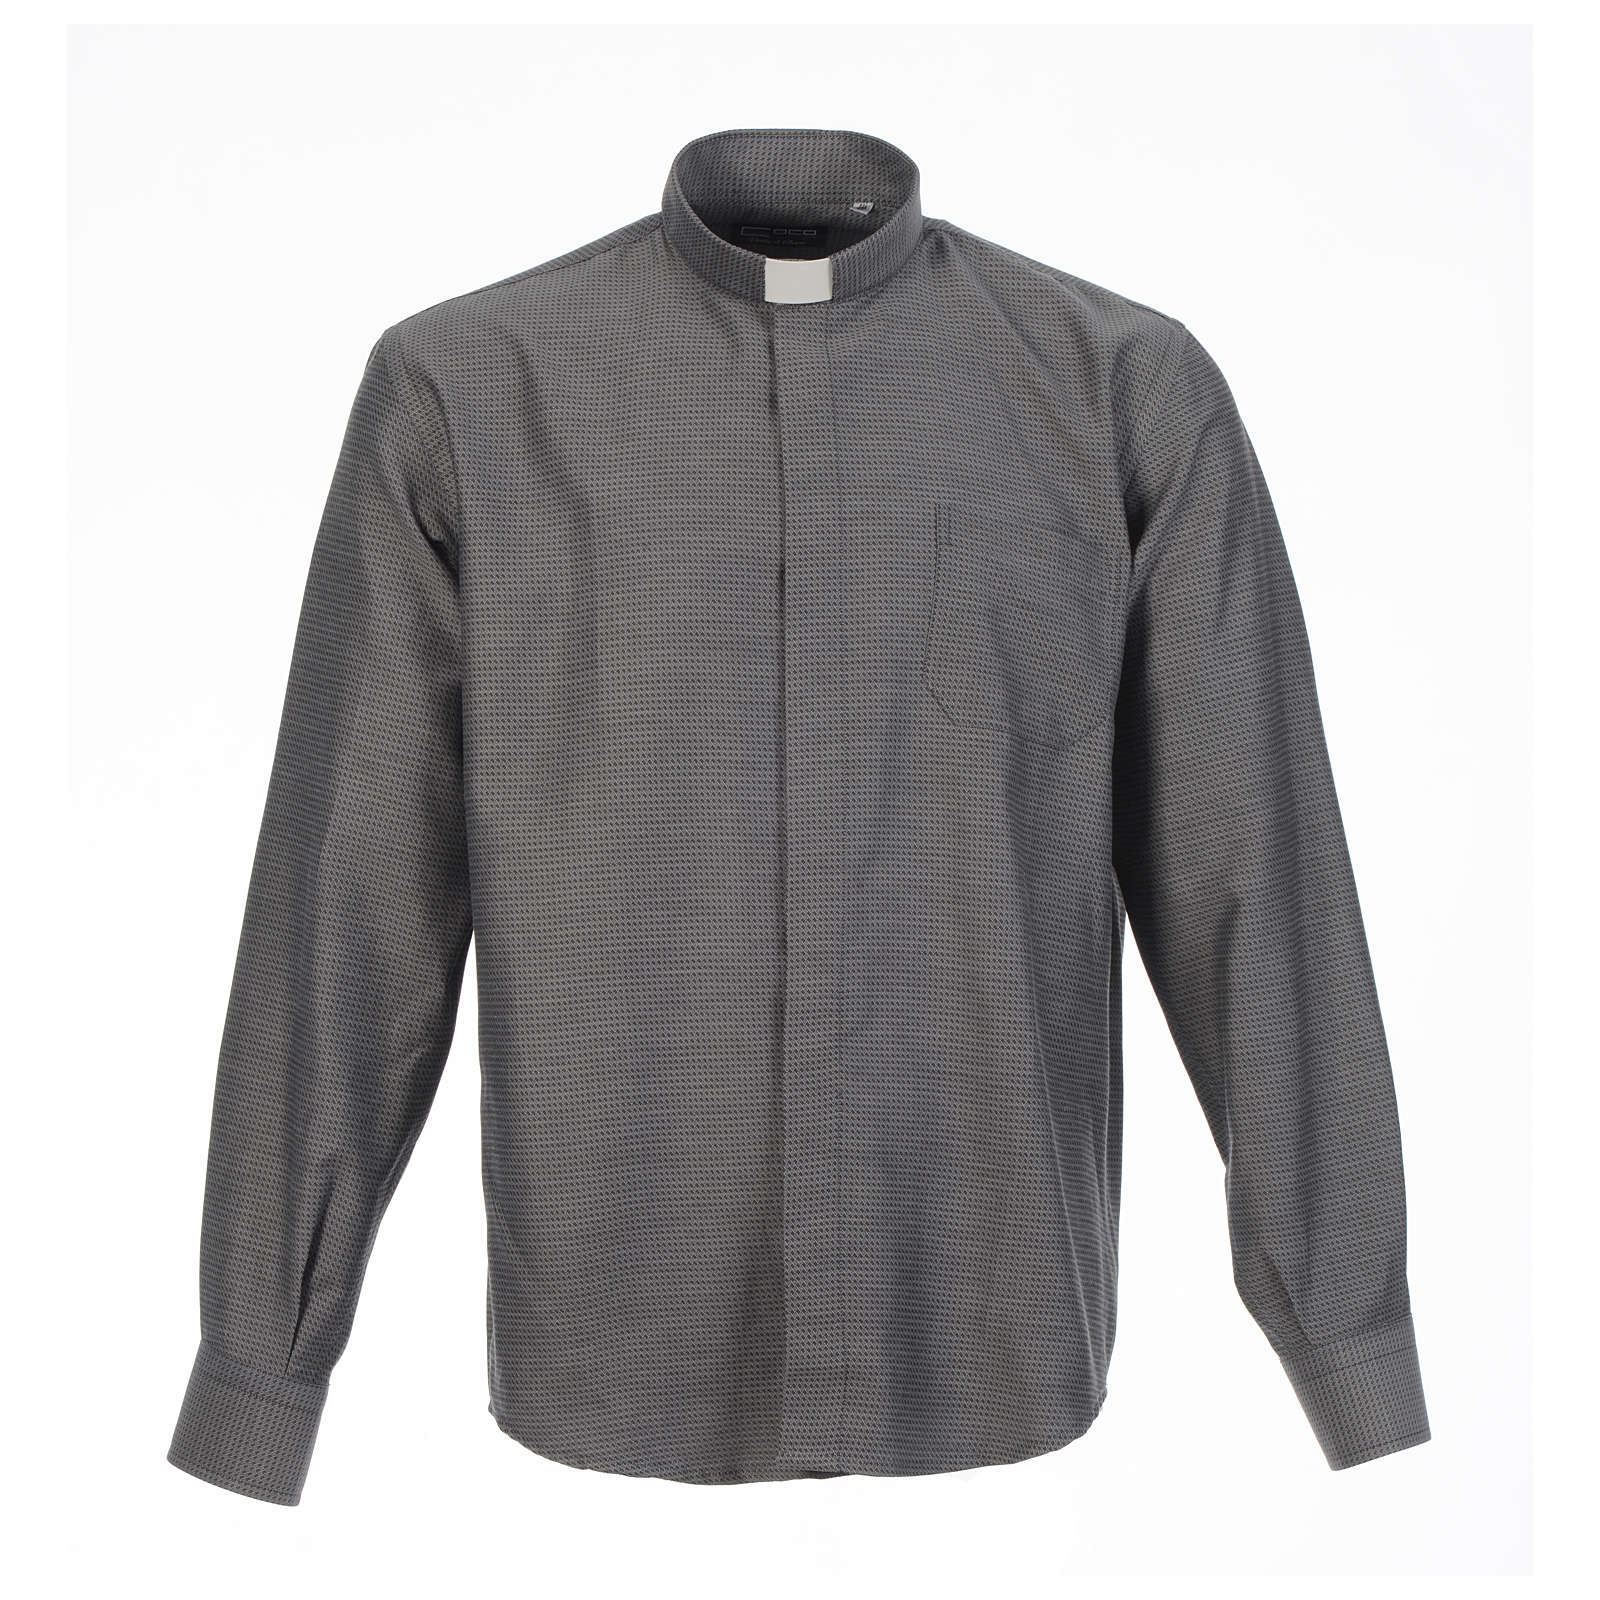 Clerical shirt and collar, grey jacquard, long sleeve 4